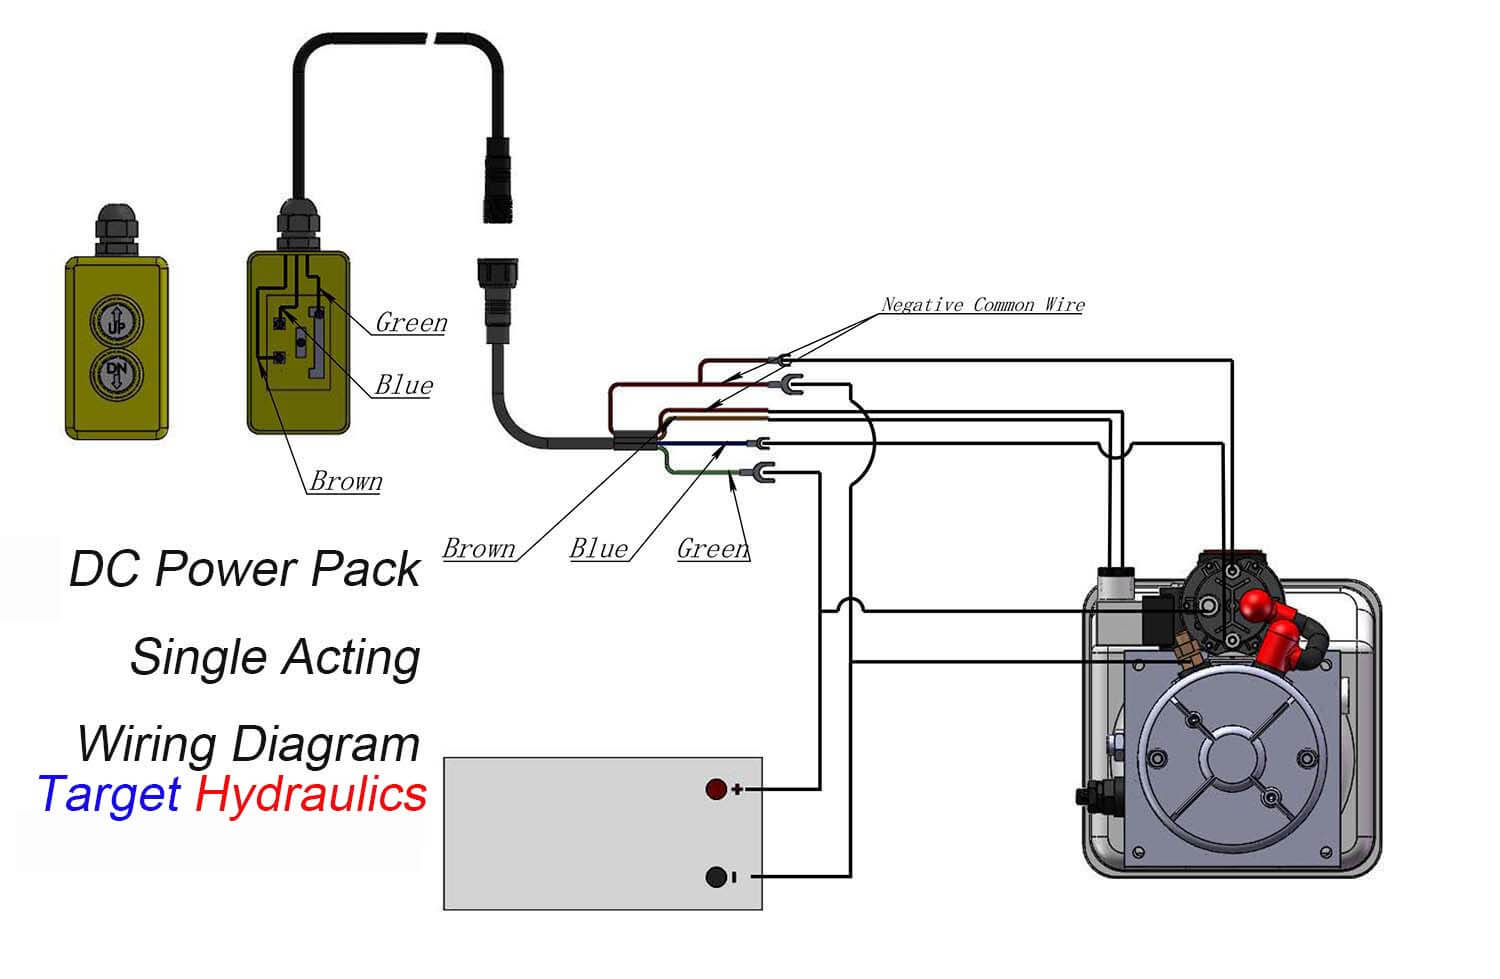 4 wire dc motor connection diagram 2003 toyota celica stereo wiring how to hydraulic power pack unit design